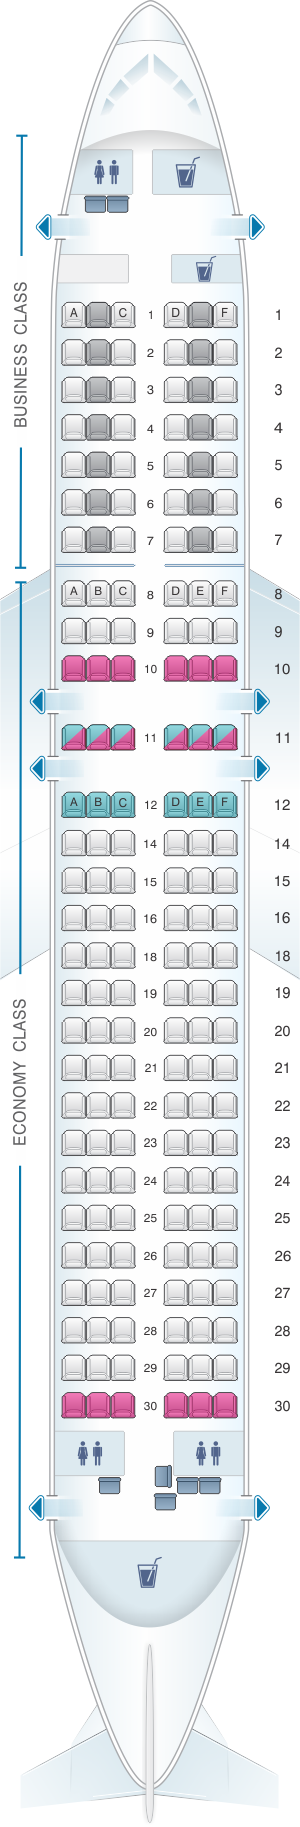 Seat map for Lufthansa Airbus A320